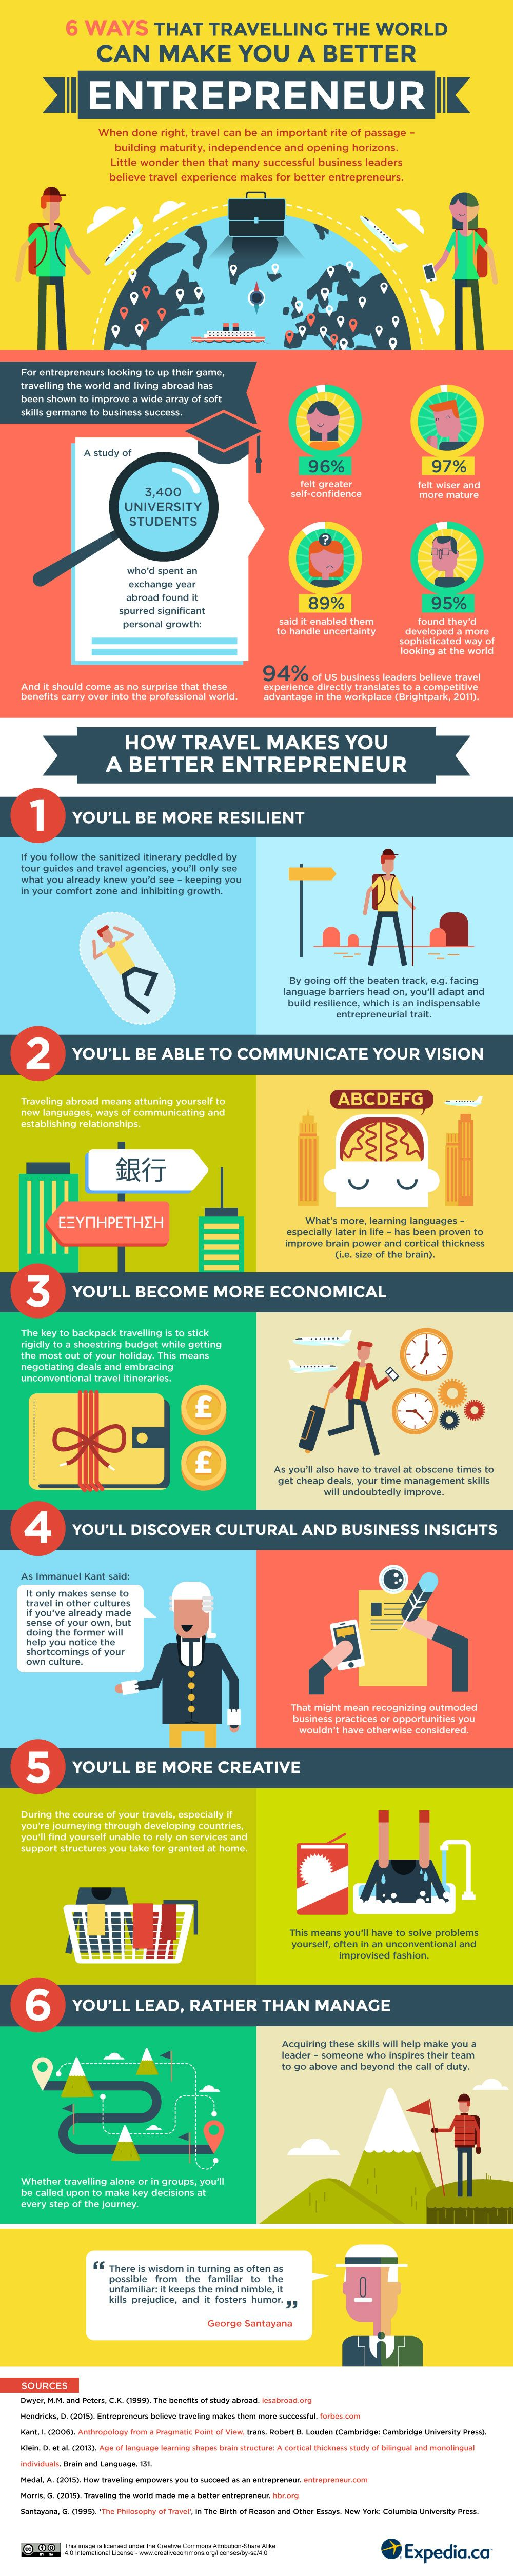 6 Ways That Travelling The World Can Make You A Better Entrepreneur #Infographic